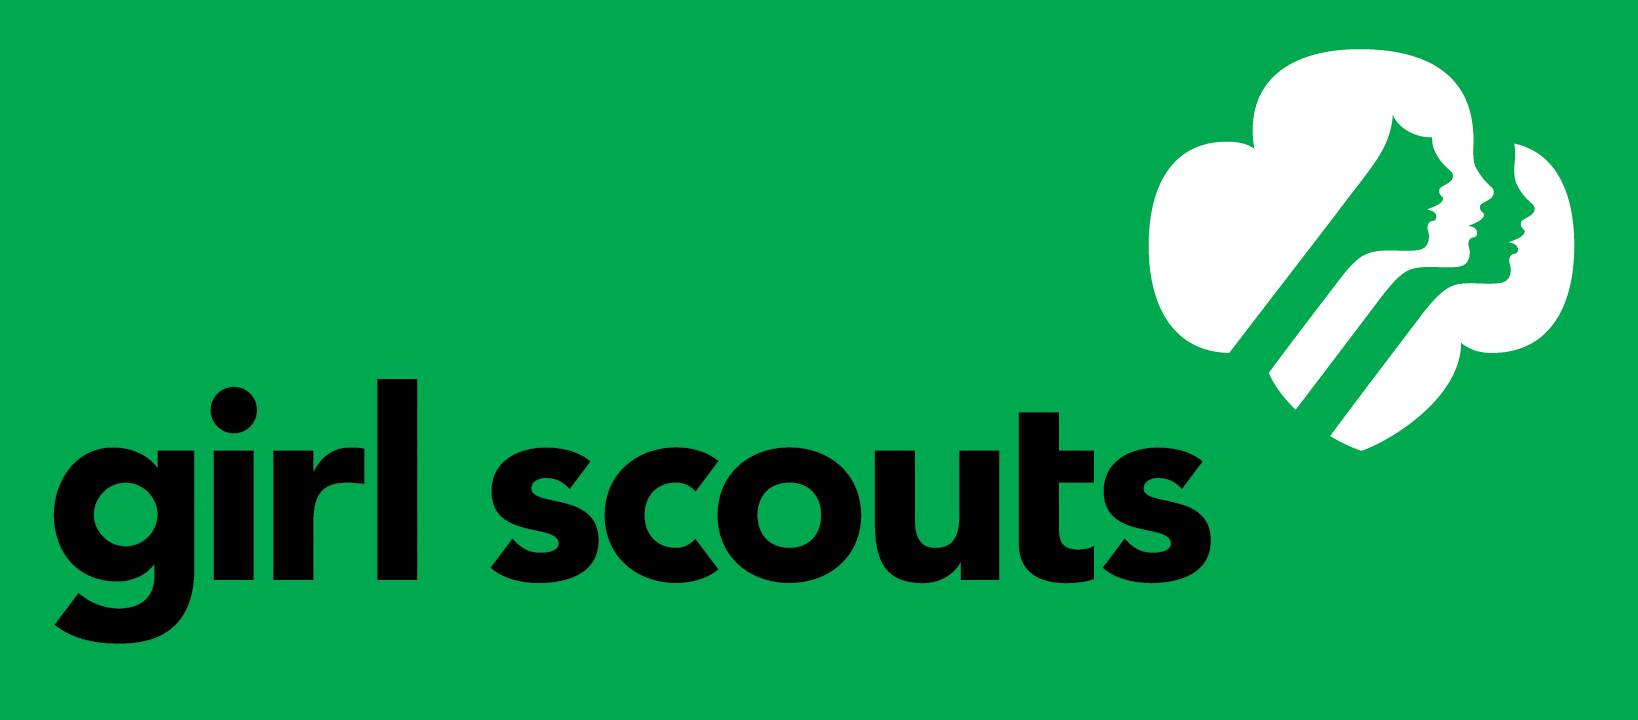 Girl Scout Logo on Green Background